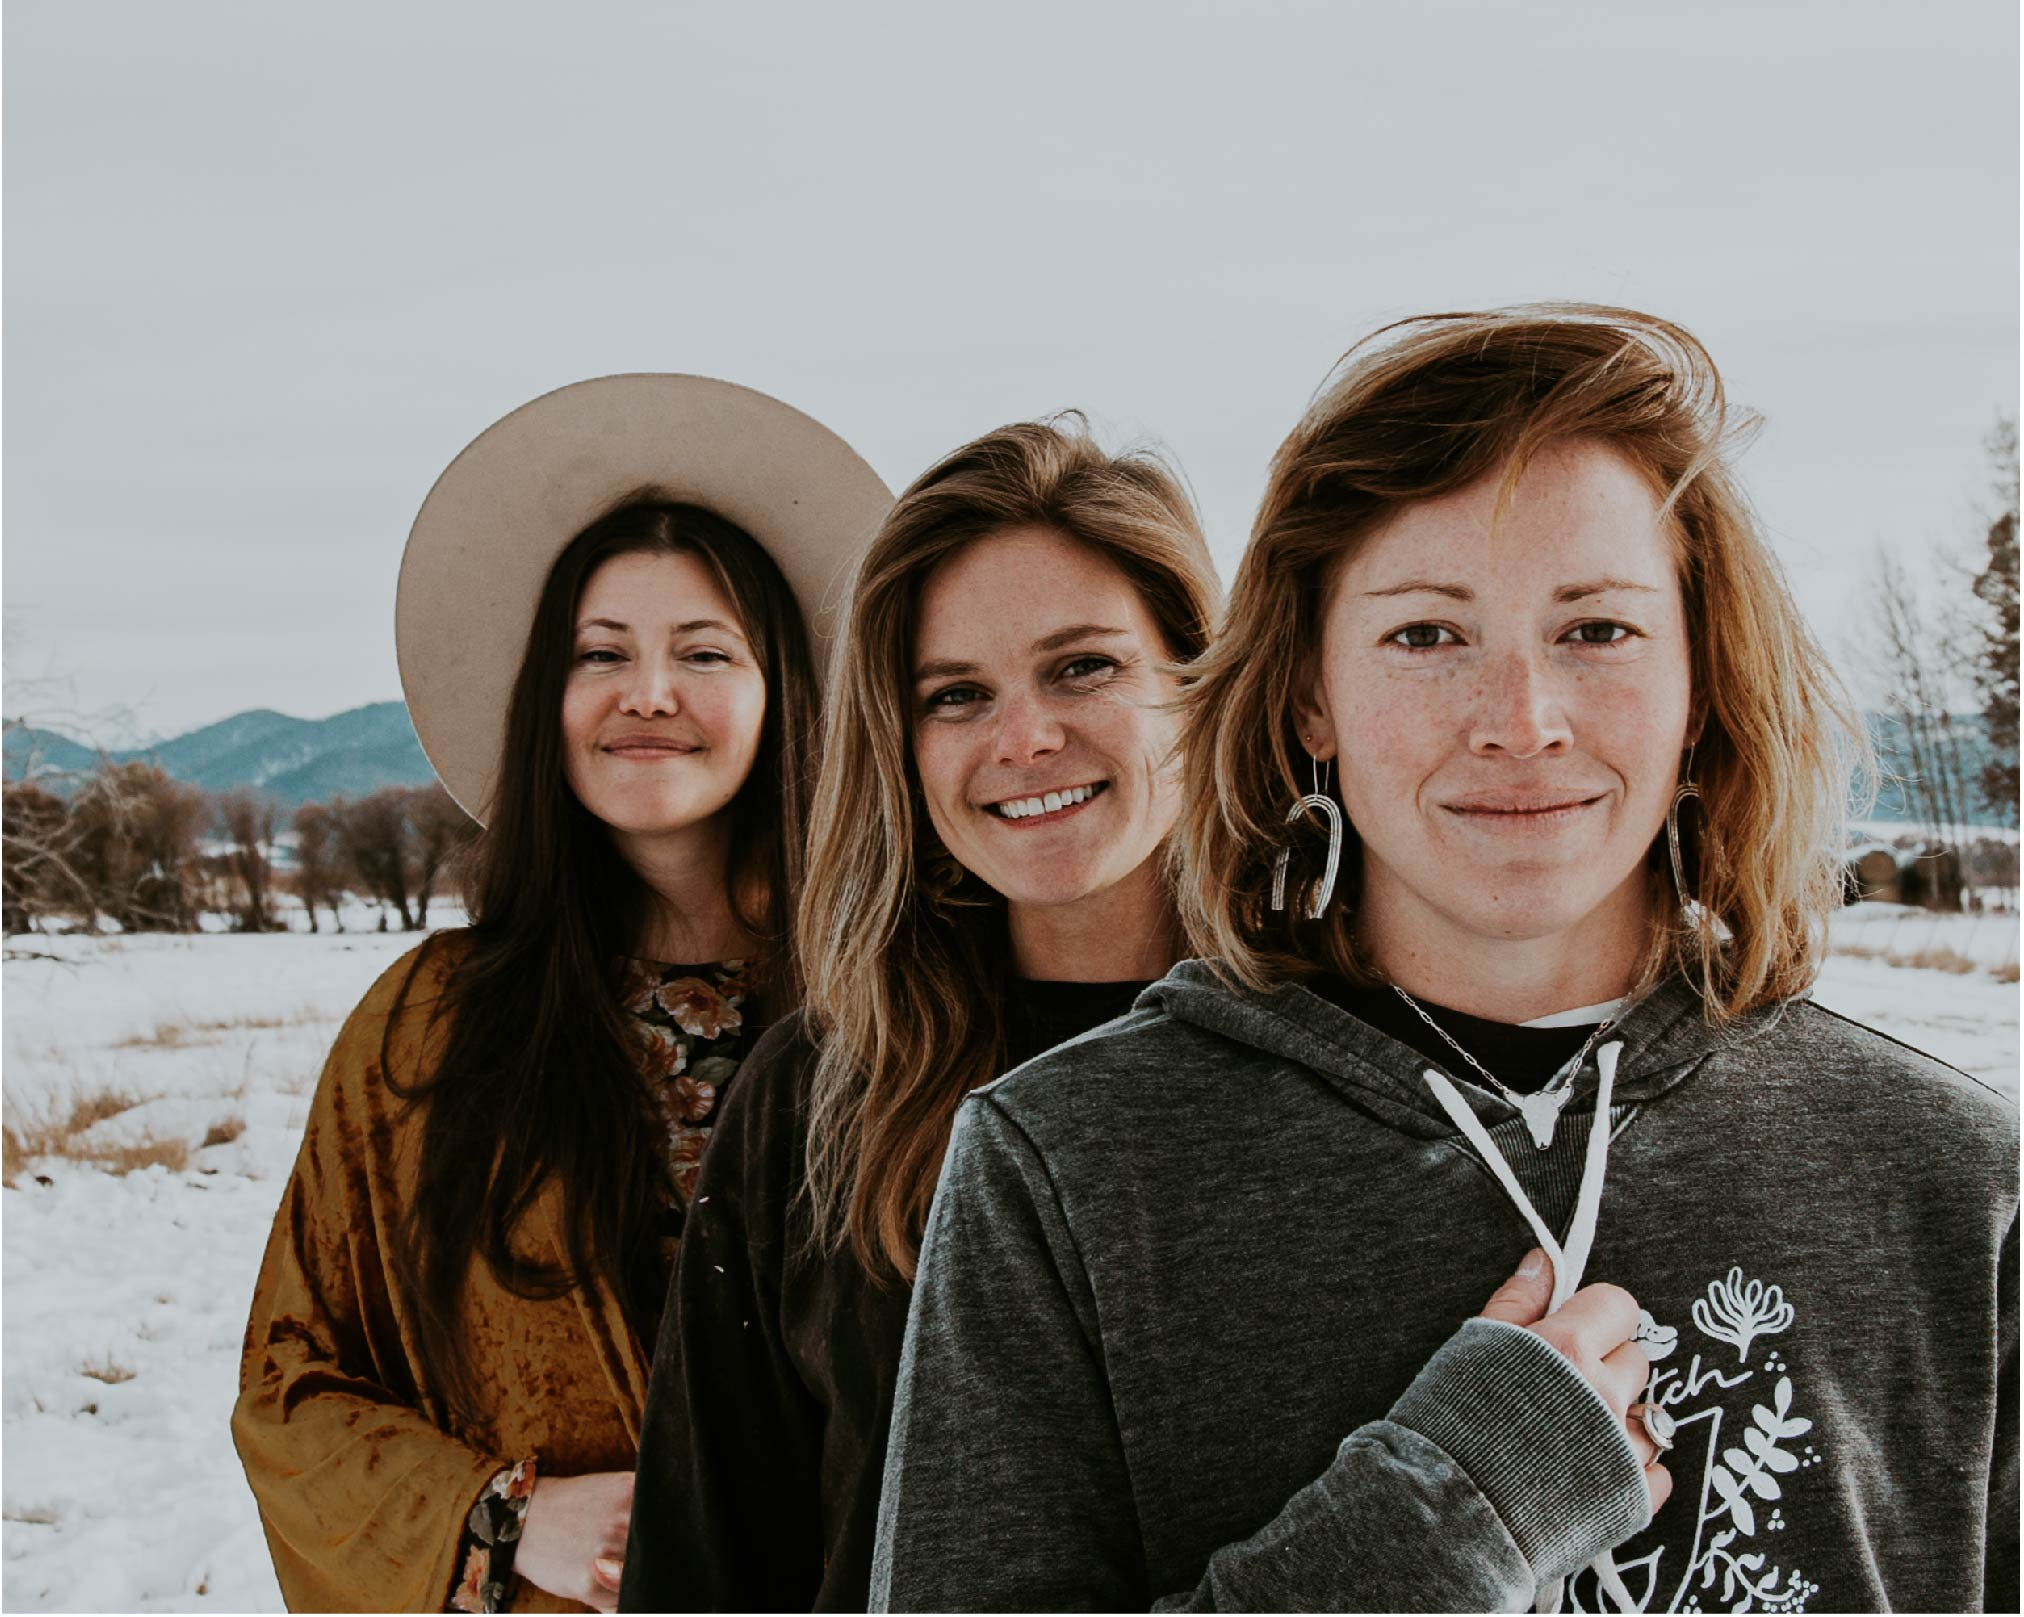 Three women standing in a snowy Bozeman, Montana field wearing Intrigue Ink shirts